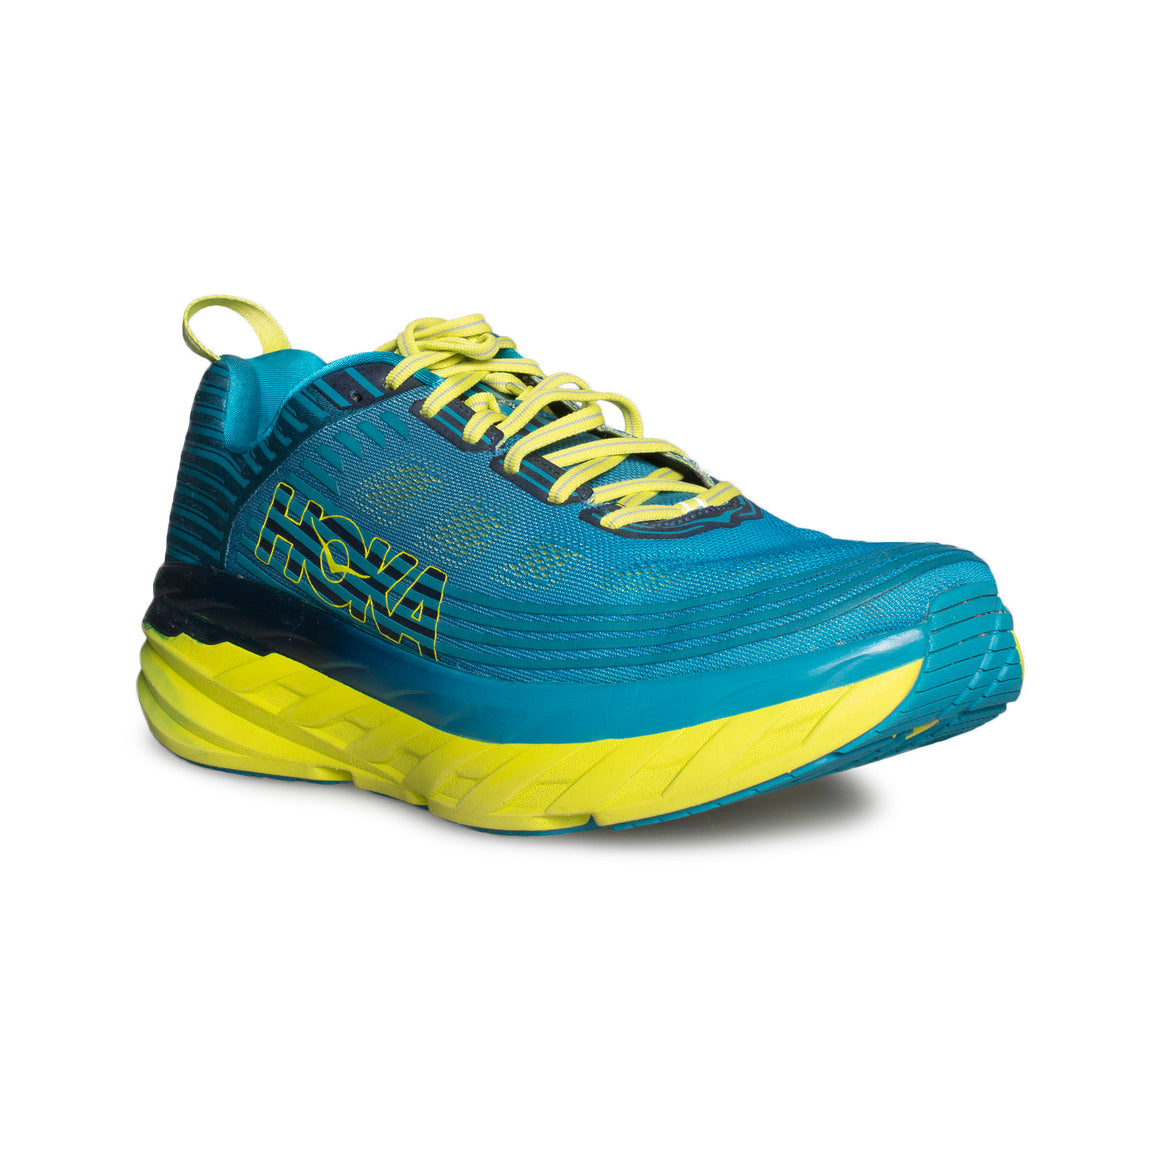 Hoka Bondi 6 Carribean Sea / Storm Blue Running Shoes - Men's